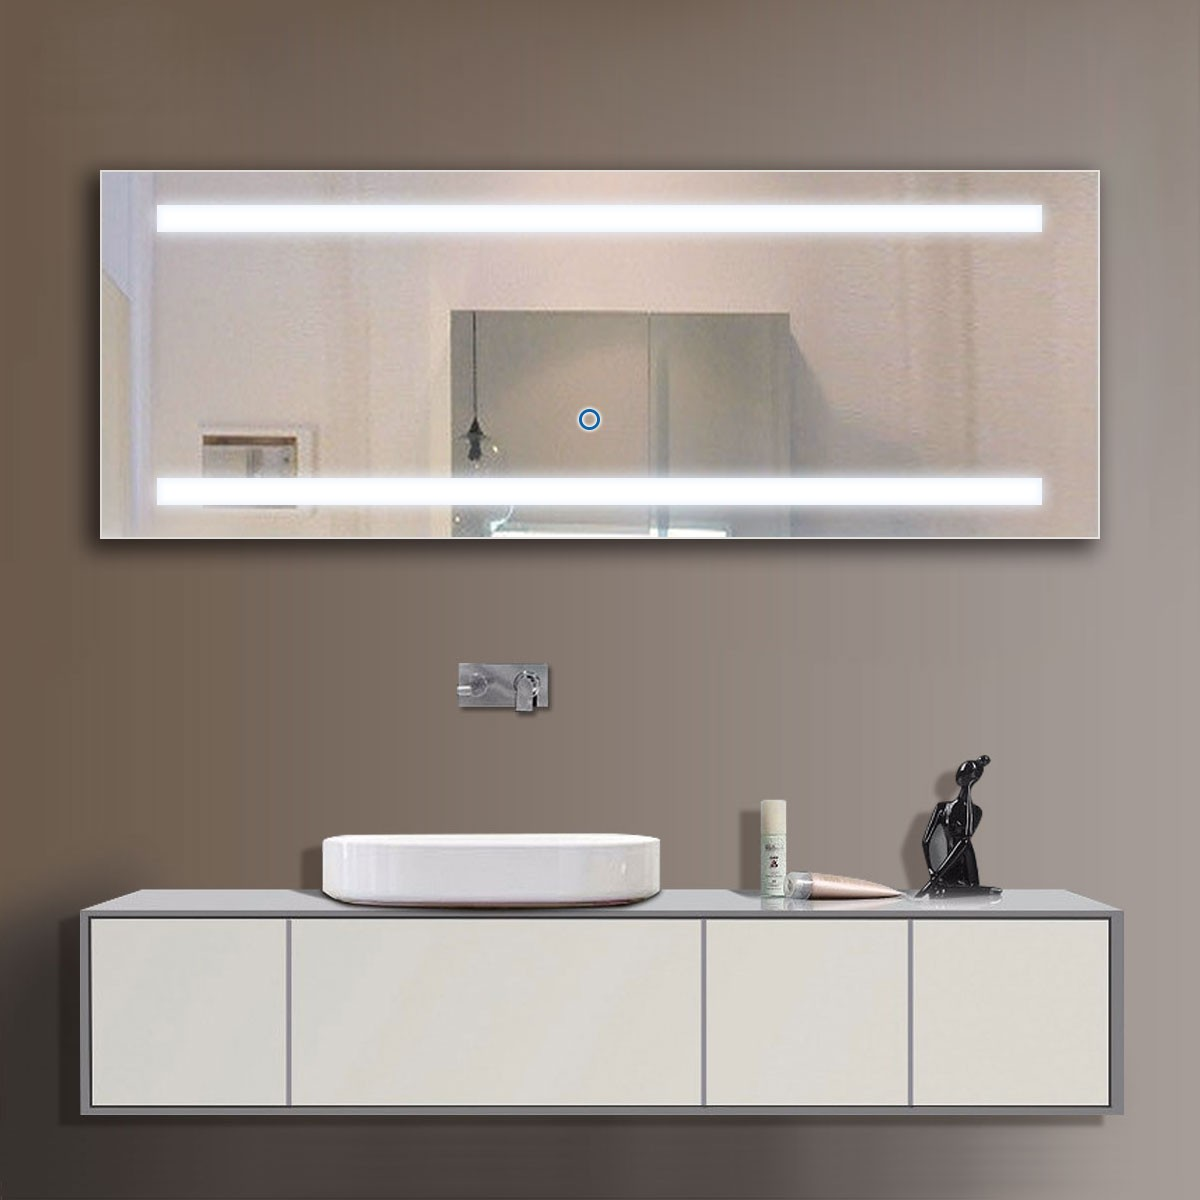 65 x 24 In LED Bathroom Mirror, Touch Button (DK-OD-C230)